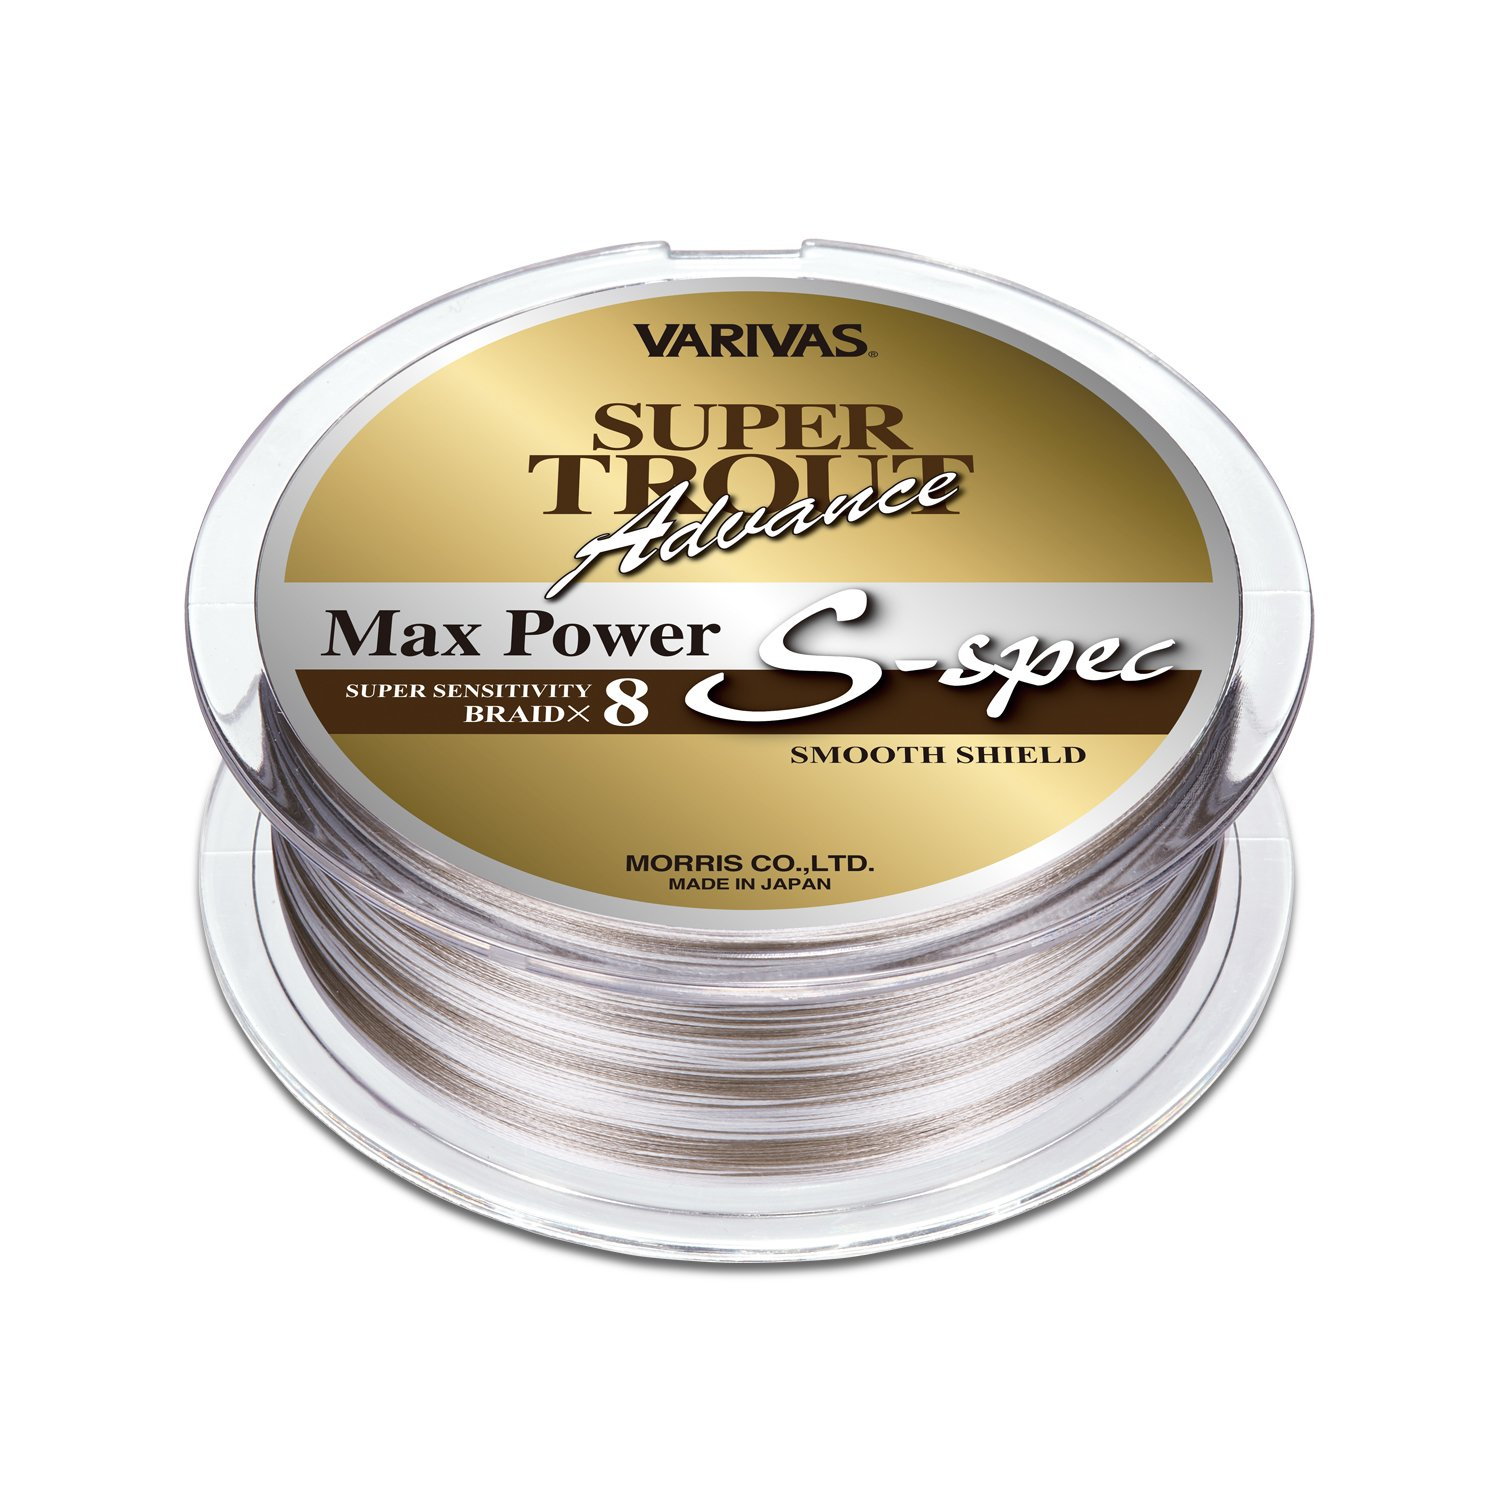 Varivas Super Trout Advance Max Power Pe SSpec 200M 0.6 12.6Lb Pe Braid Line